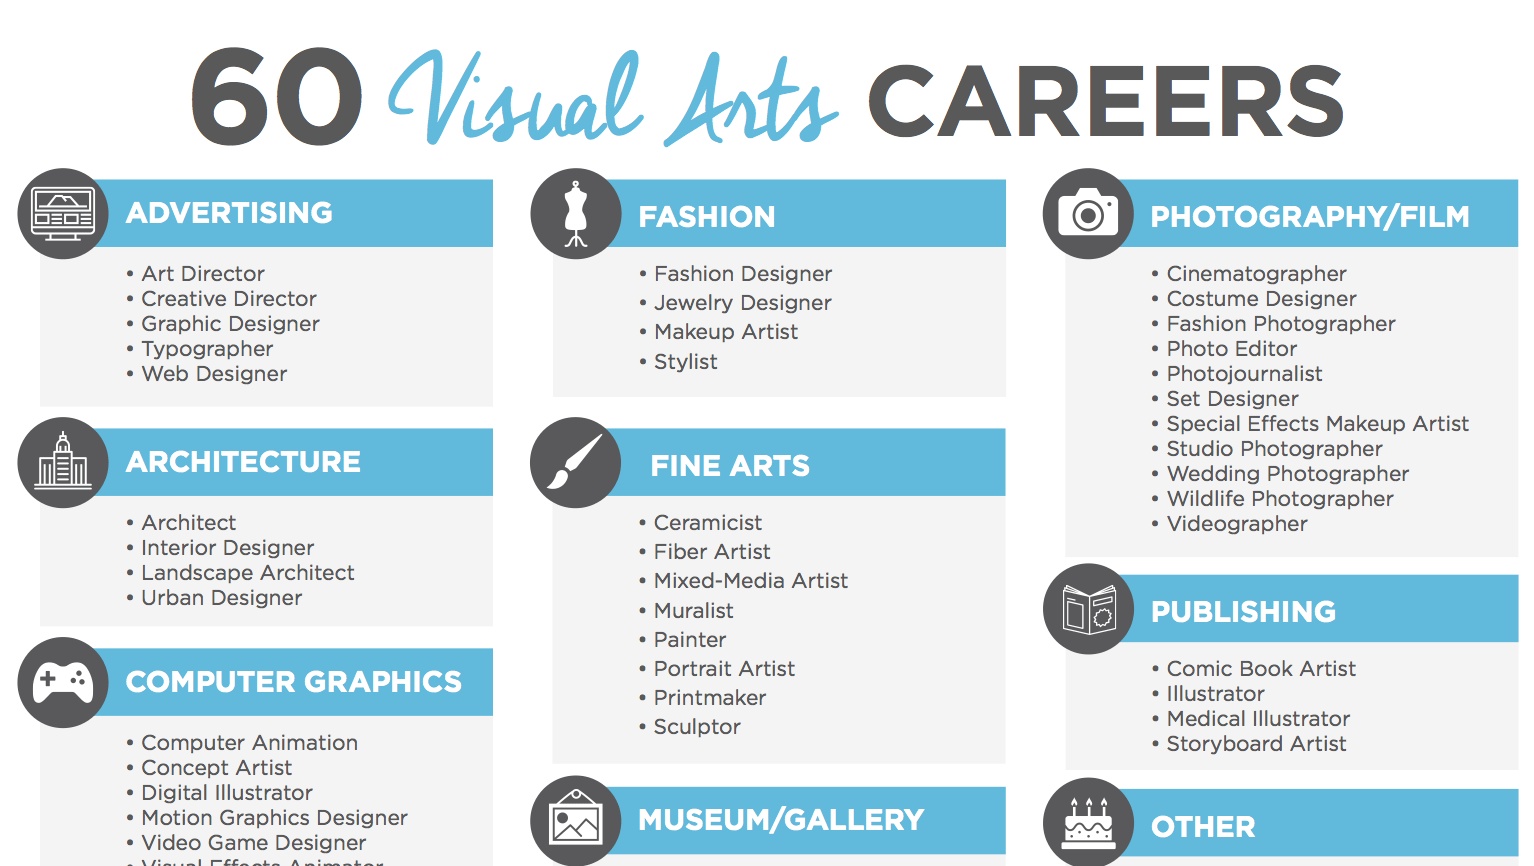 60 Visual Arts Careers To Discuss With Your Students